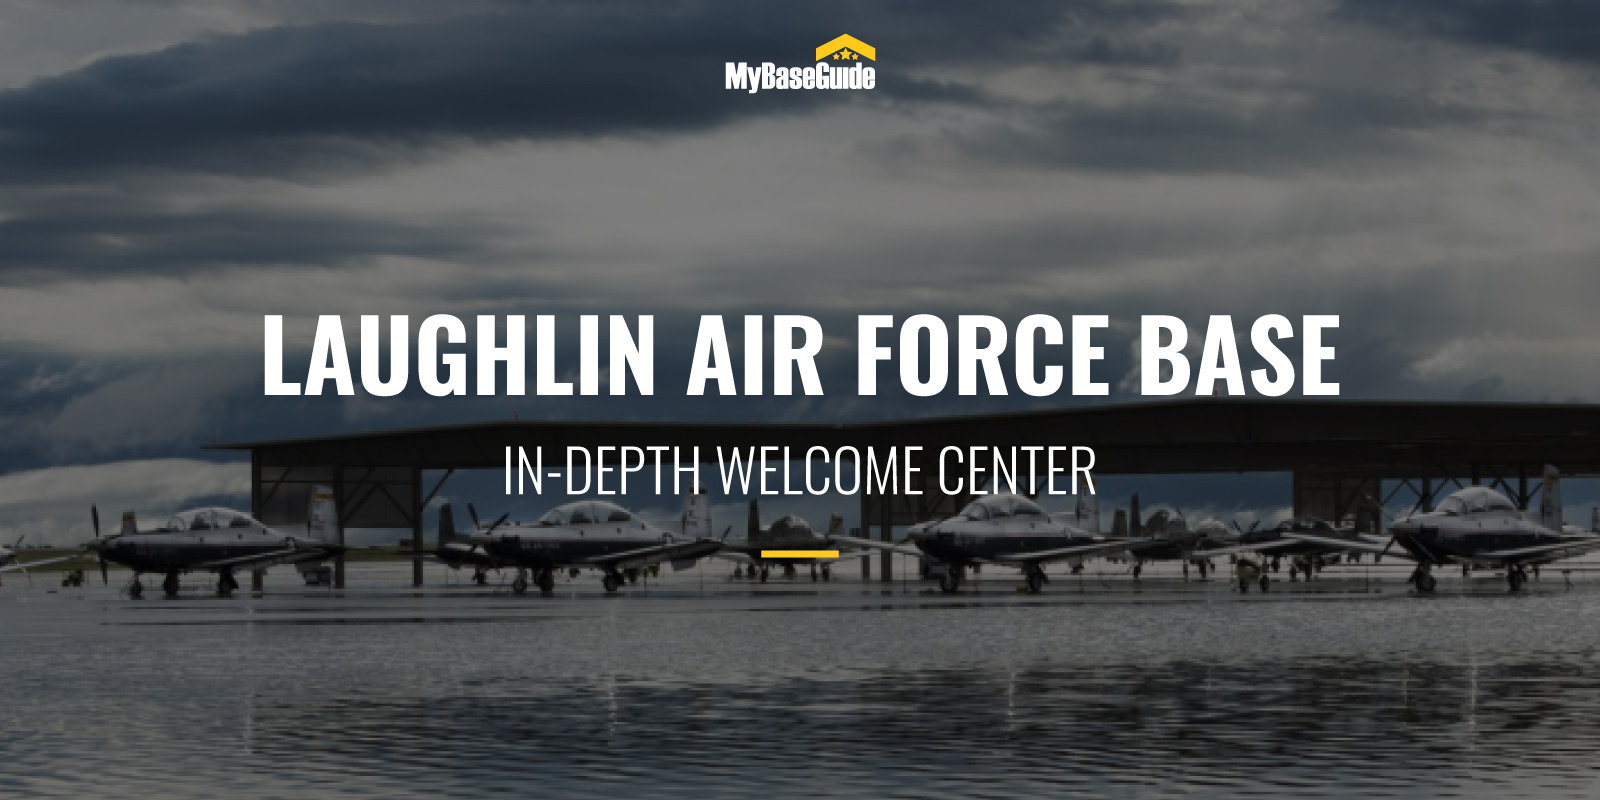 Laughlin Air Force Base: In-Depth Welcome Center